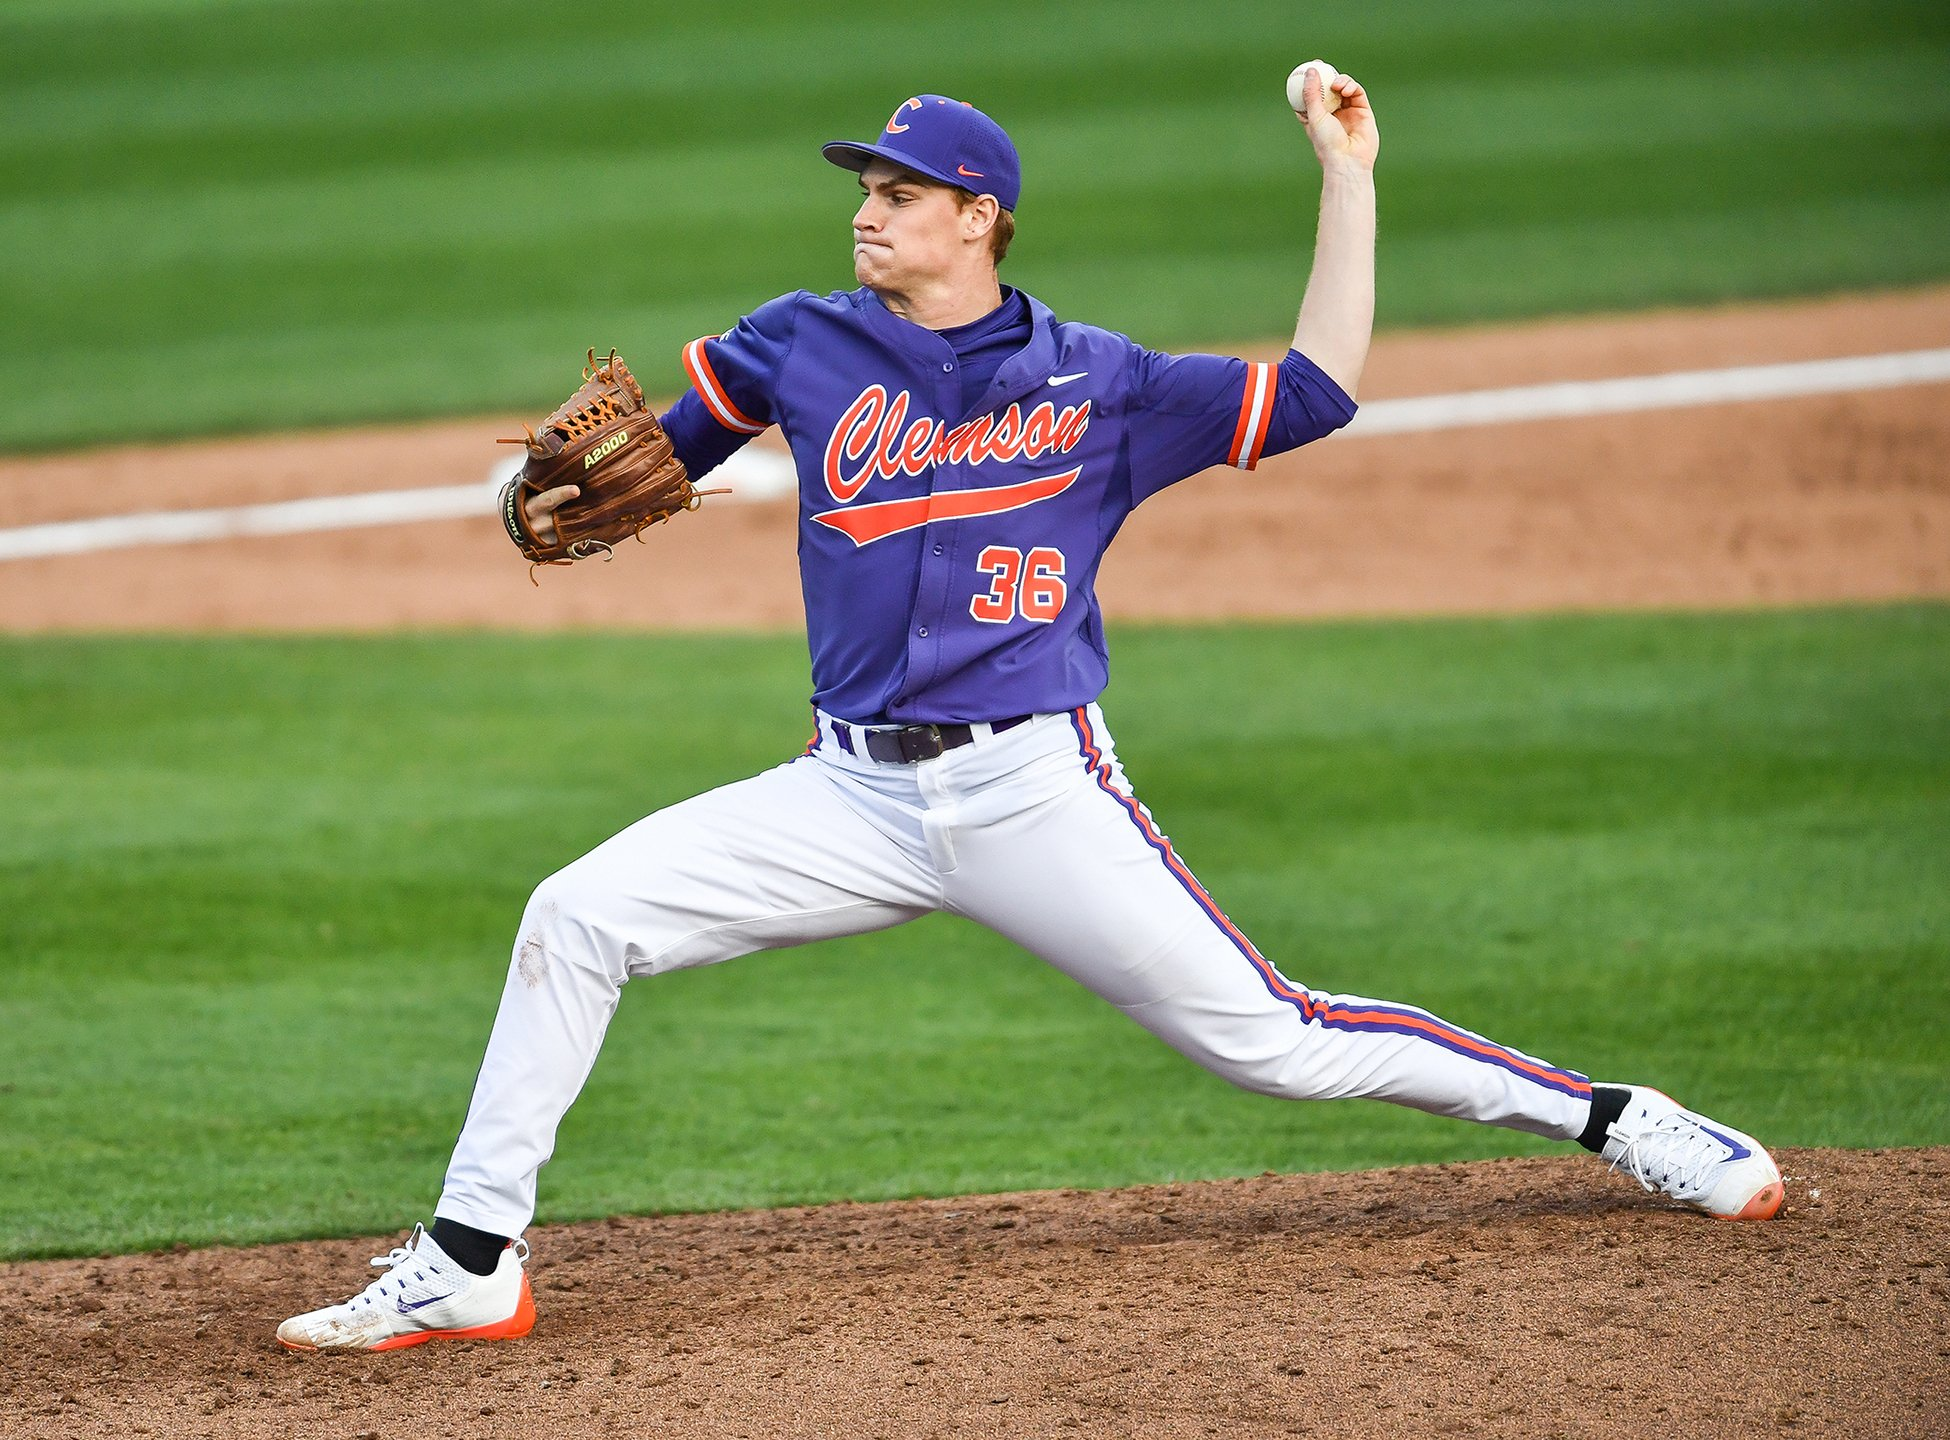 """Pat Krall's delivery solid in classroom & on the mound."" Story by Rick Uhlmann.  LINK - https://t.co/t3rUq1KAMn https://t.co/zMIIoiSJTR"